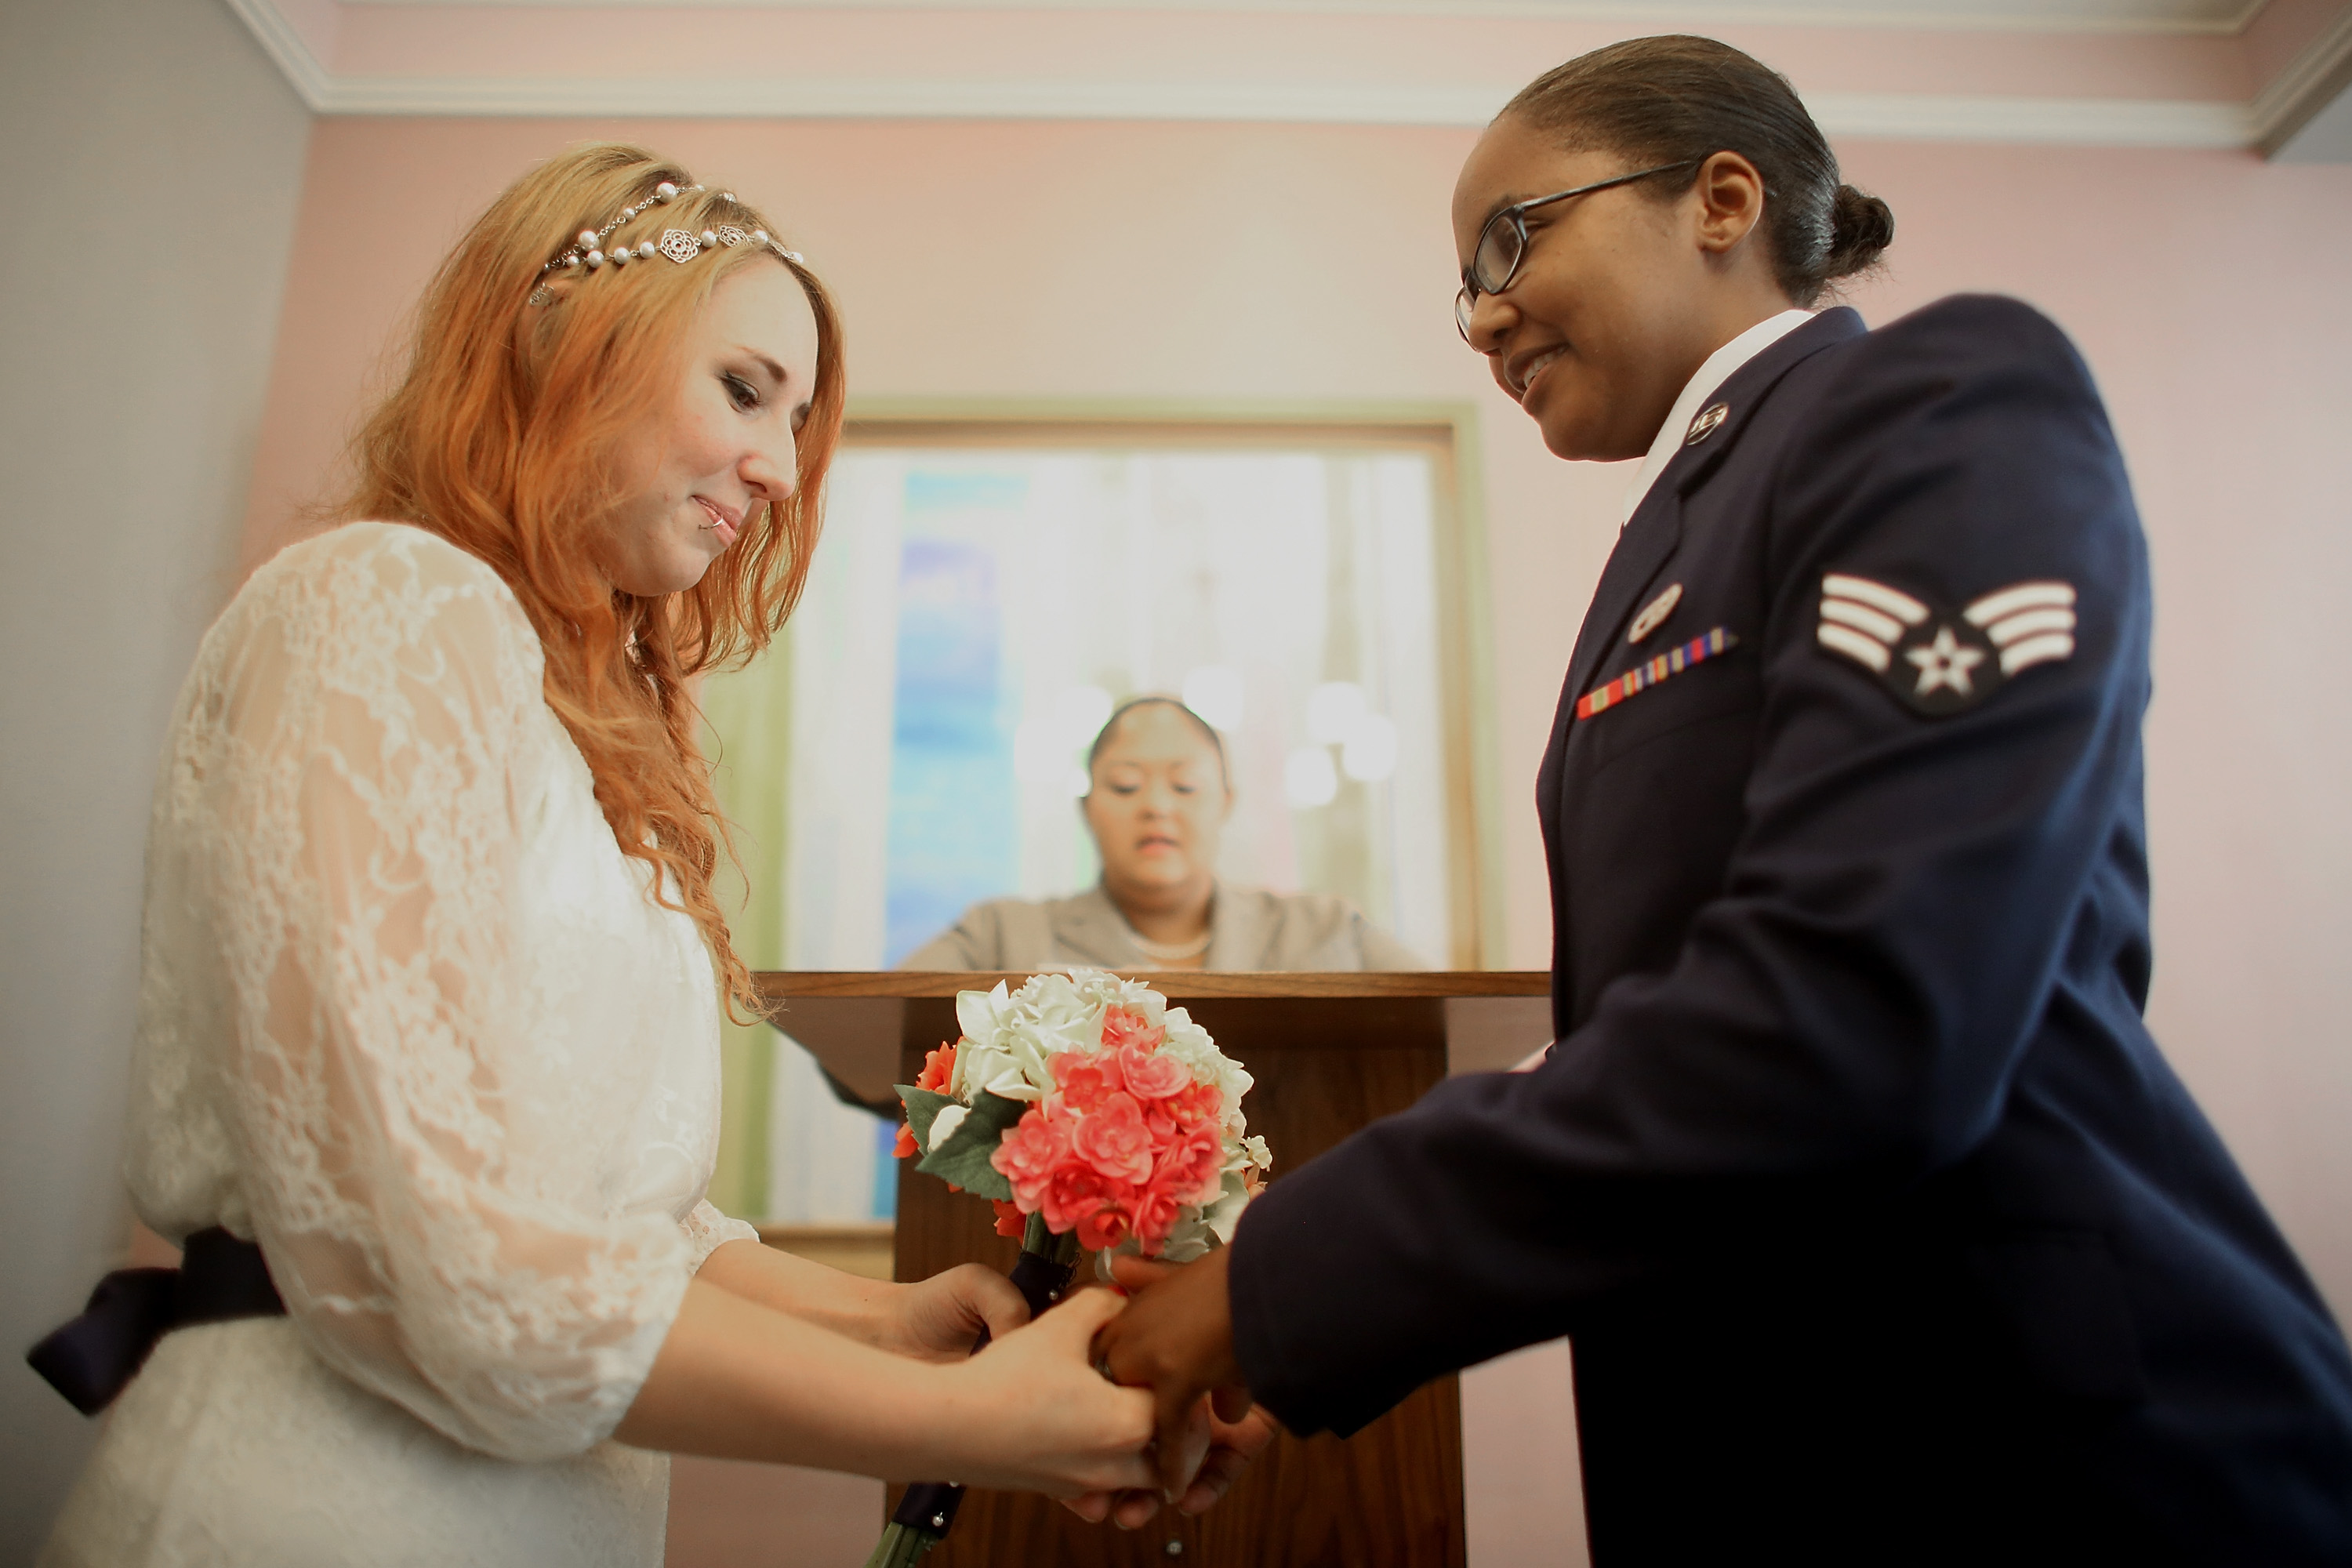 U.S. Air Force Senior Airman Shyla Smith (R) and Courtney Burdeshaw hold hands in the west chapel during their wedding ceremony at the Manhattan Marriage Bureau the day after the U.S. Supreme Court ruling on DOMA on June 27, 2013